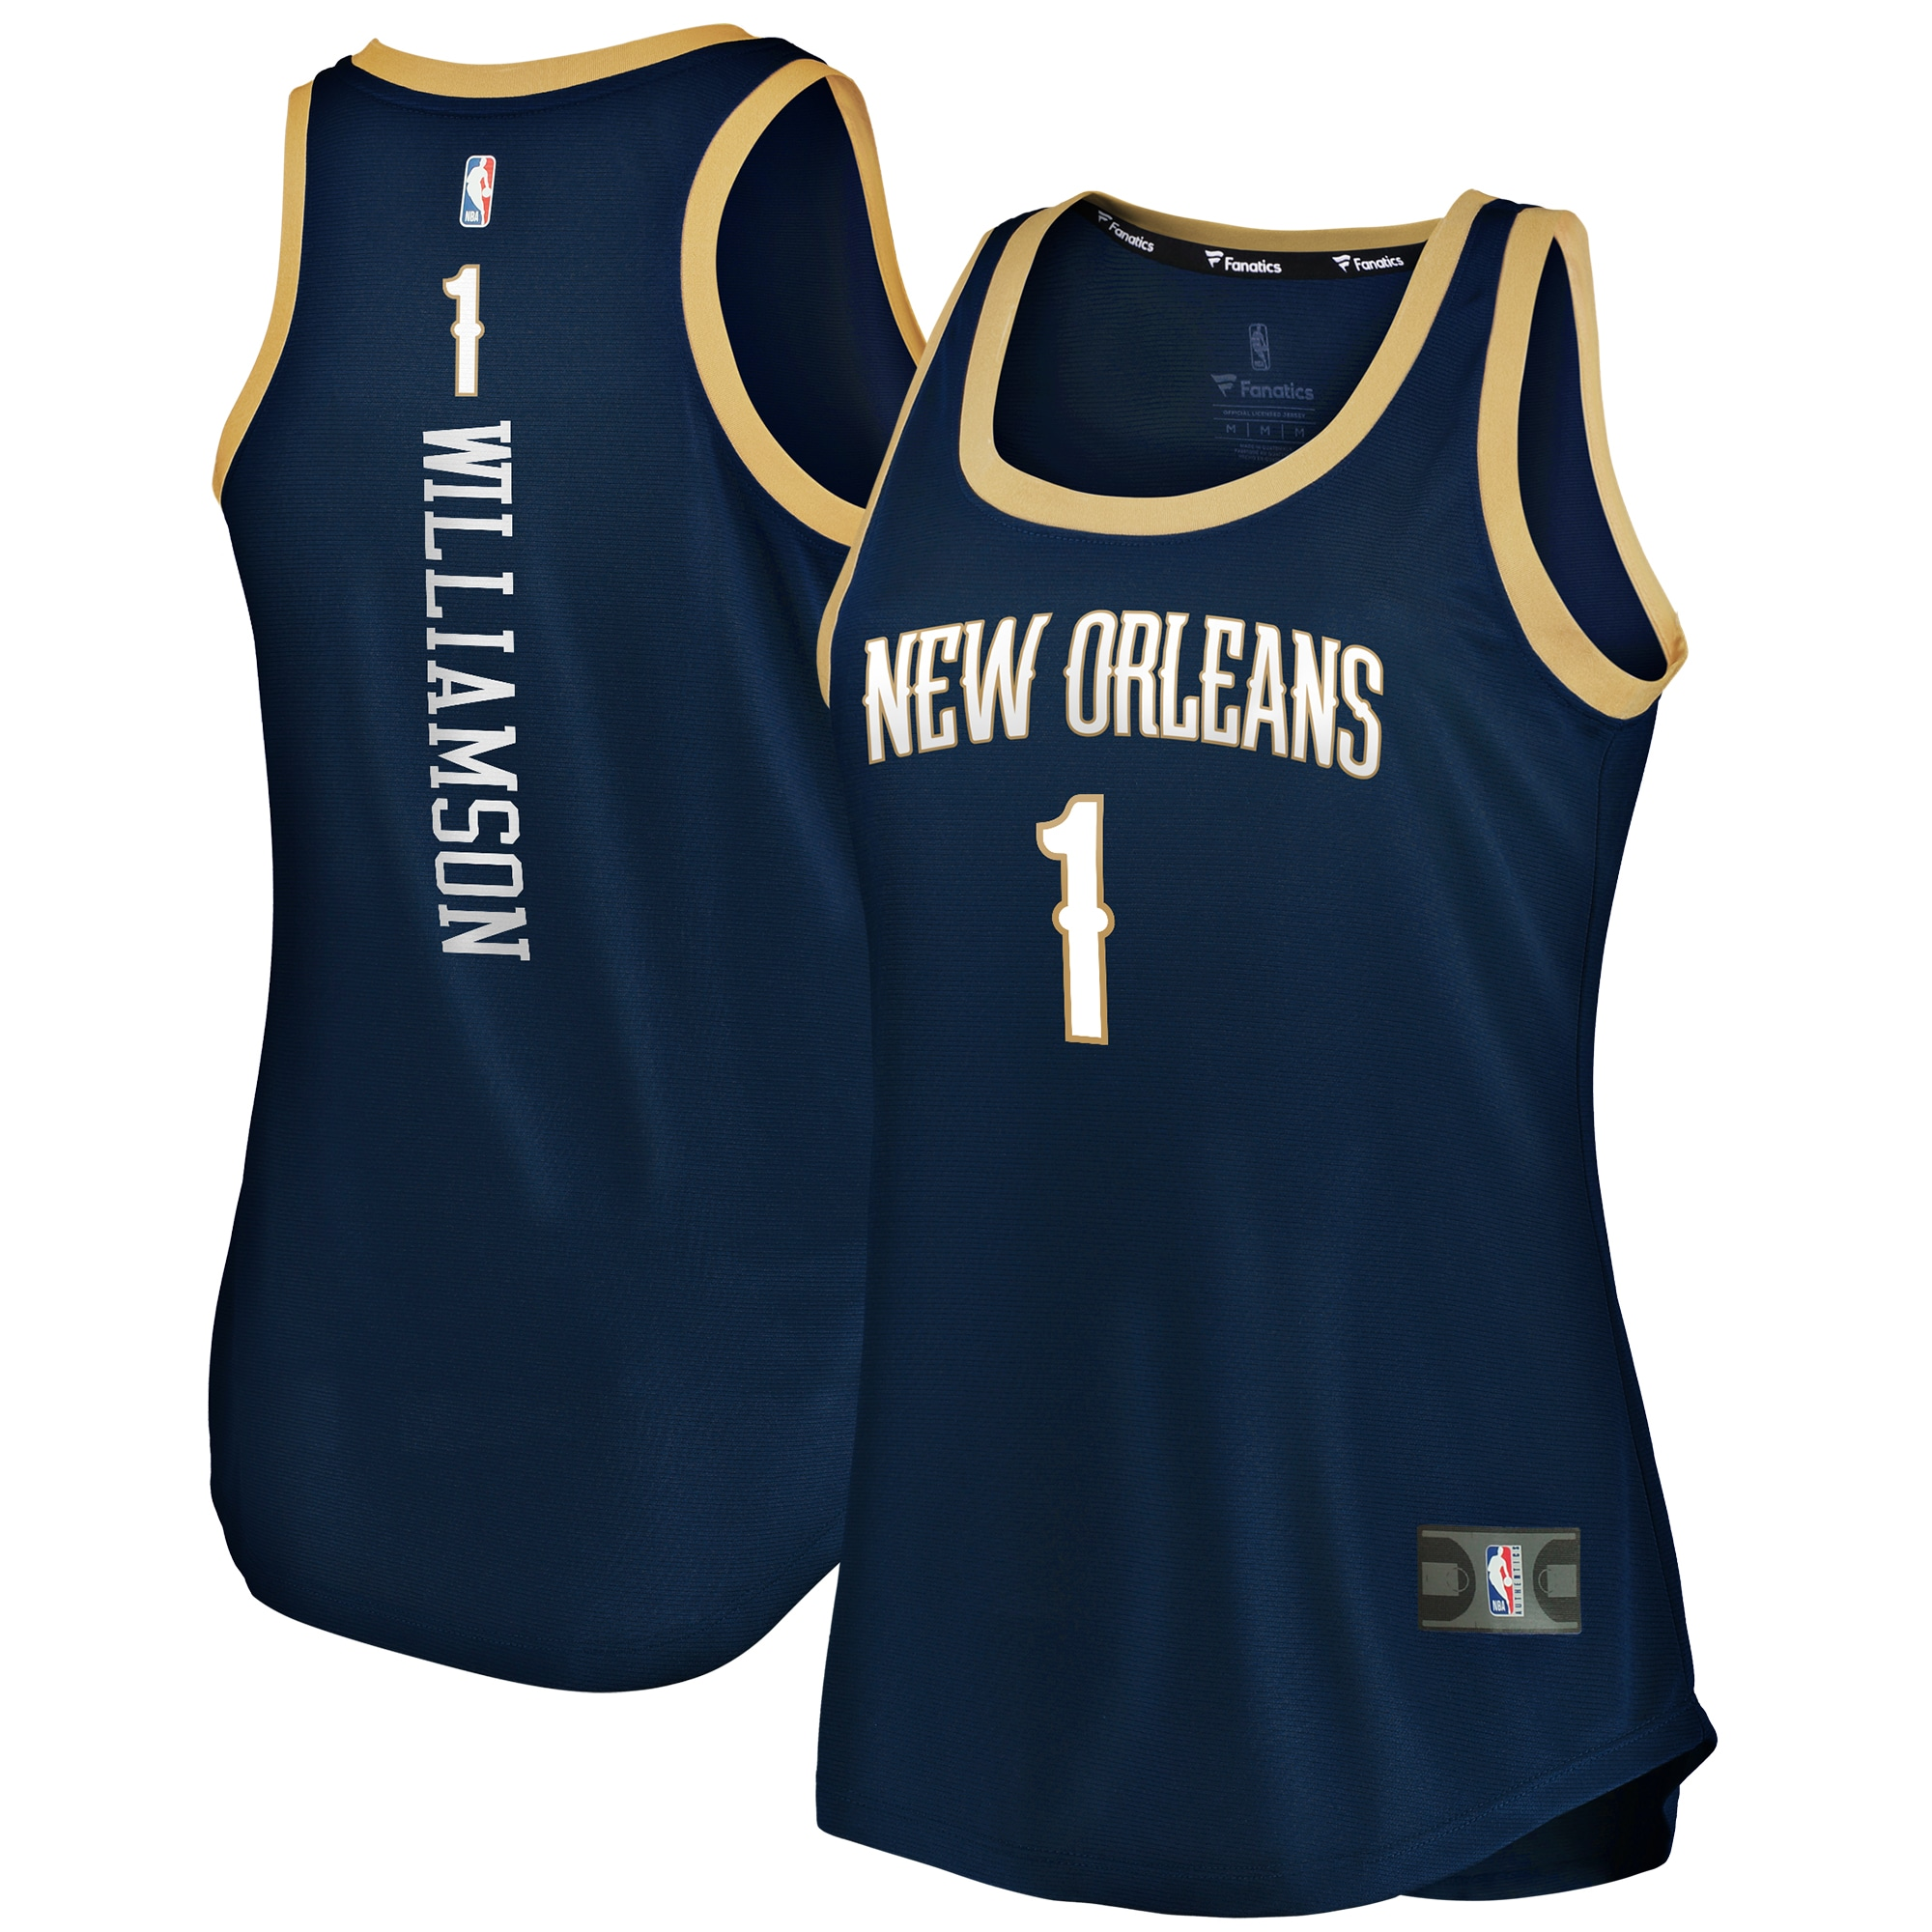 Zion Williamson New Orleans Pelicans Fanatics Branded Women's 2019/20 Fast Break Team Tank Jersey - Icon Edition - Navy